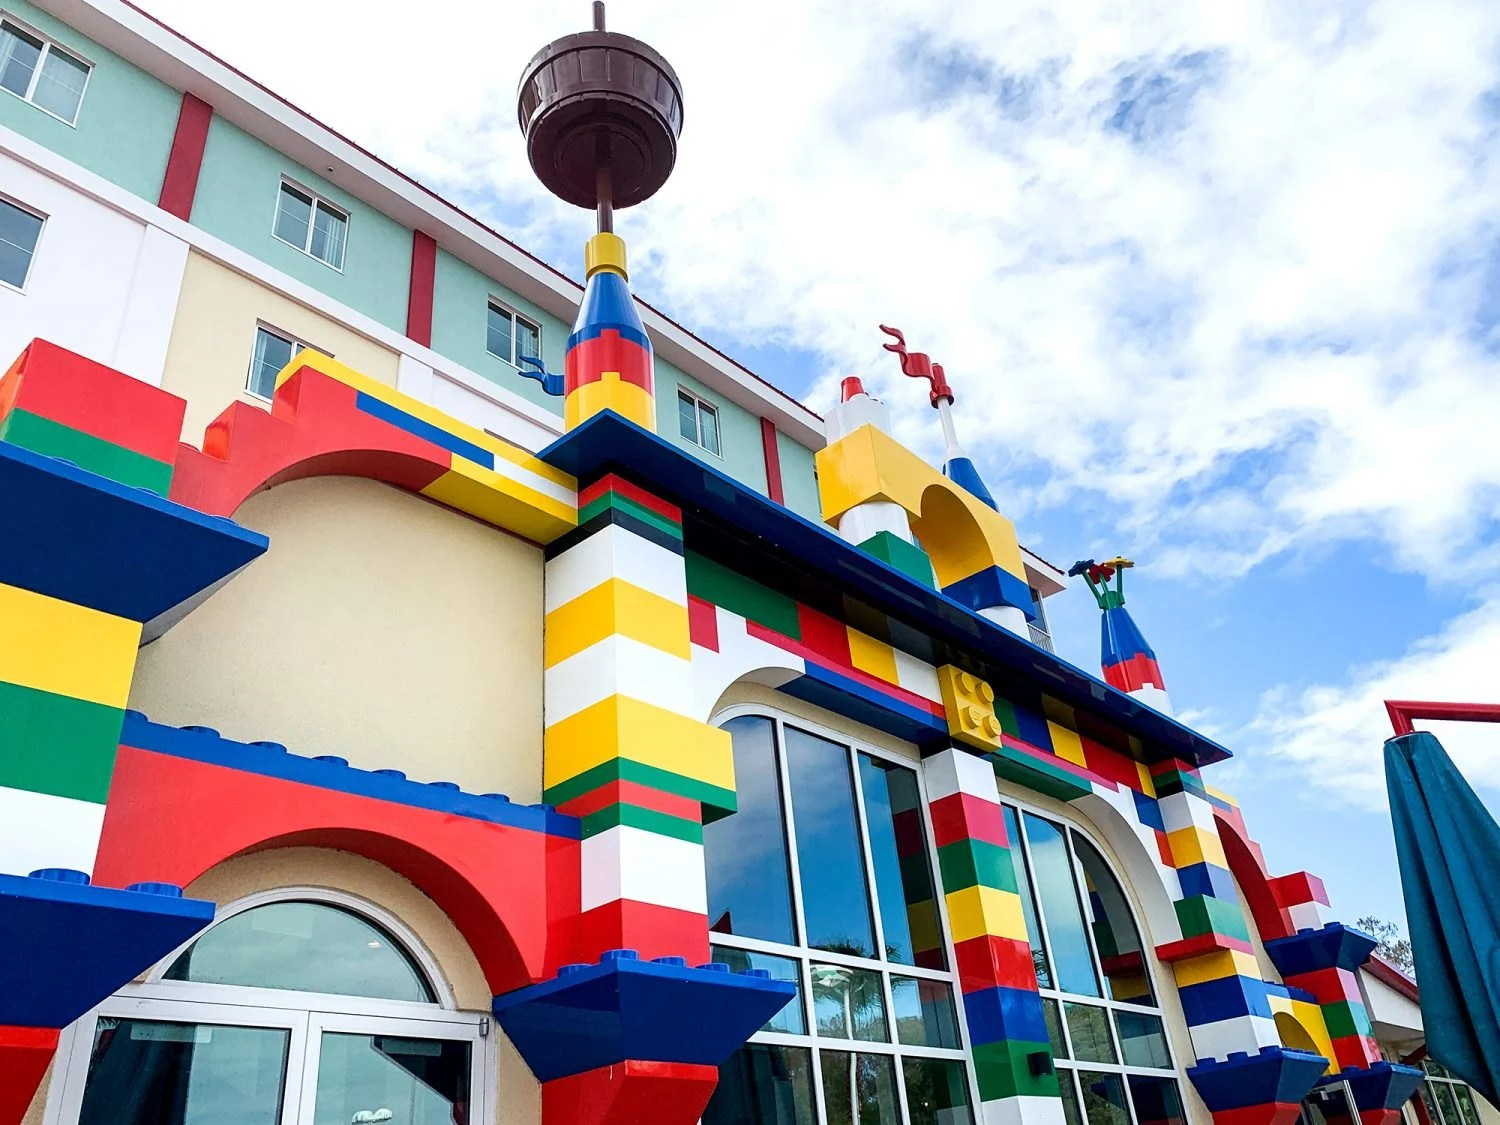 the back view of the Legoland Hotel in Florida